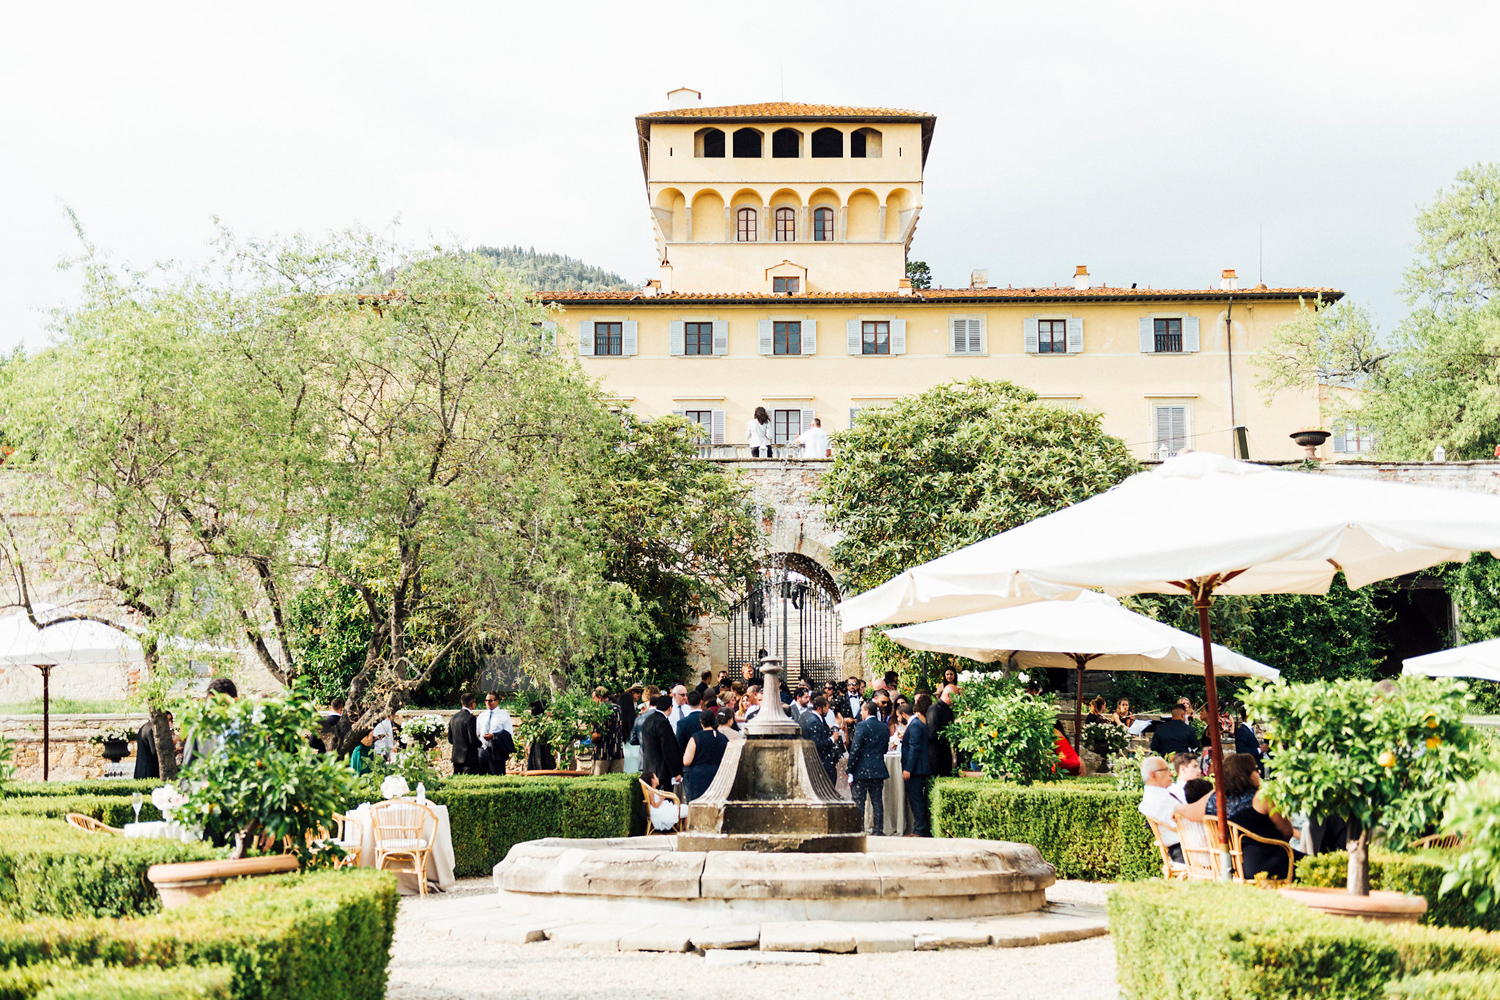 katie_mitchell_wedding_florence_tuscany_villa_di_miano_wedding_photography_39.jpg